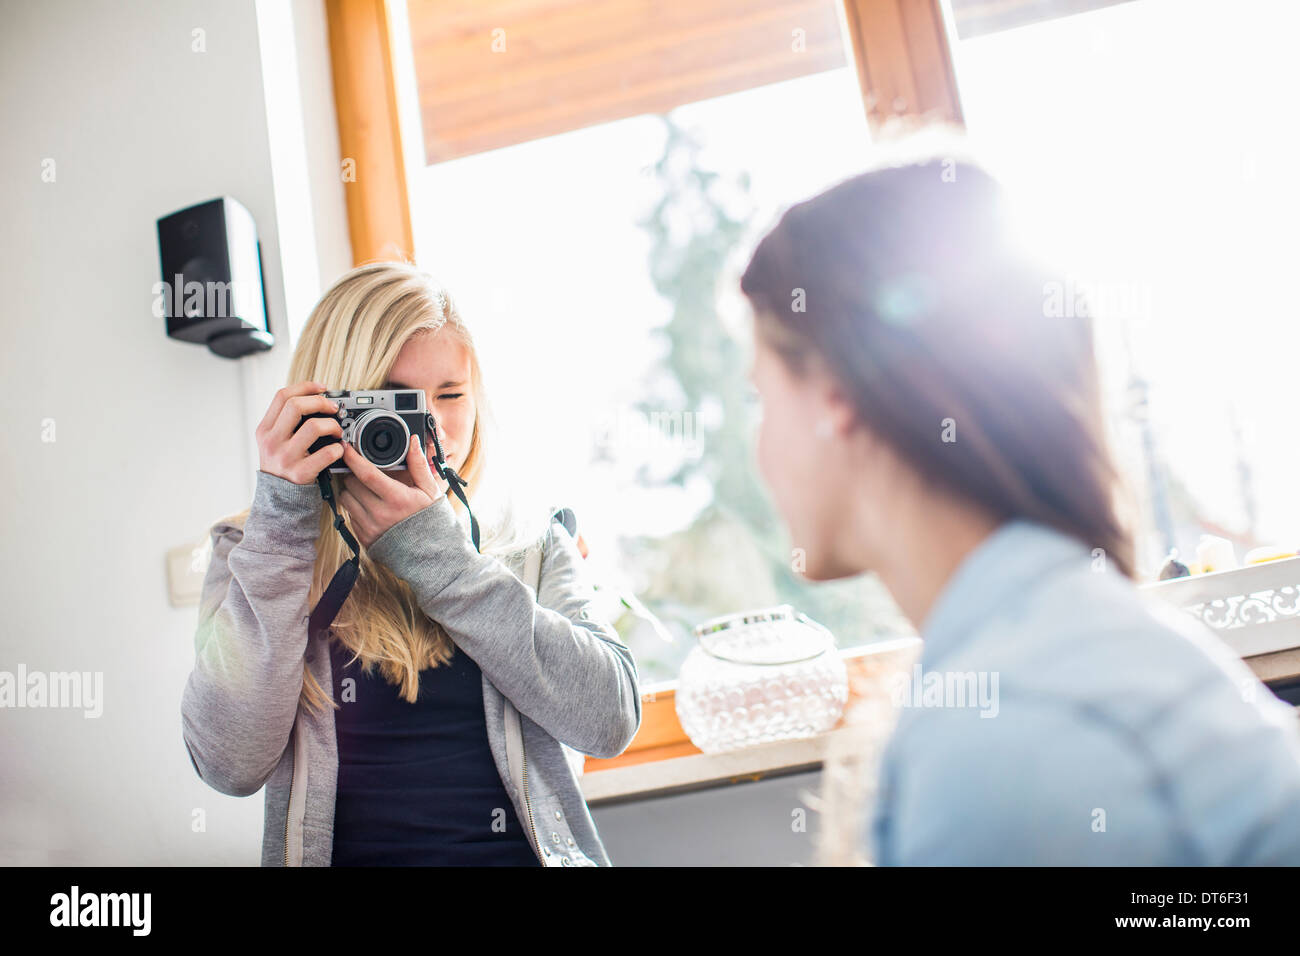 Teenage girl photographing friend with camera - Stock Image